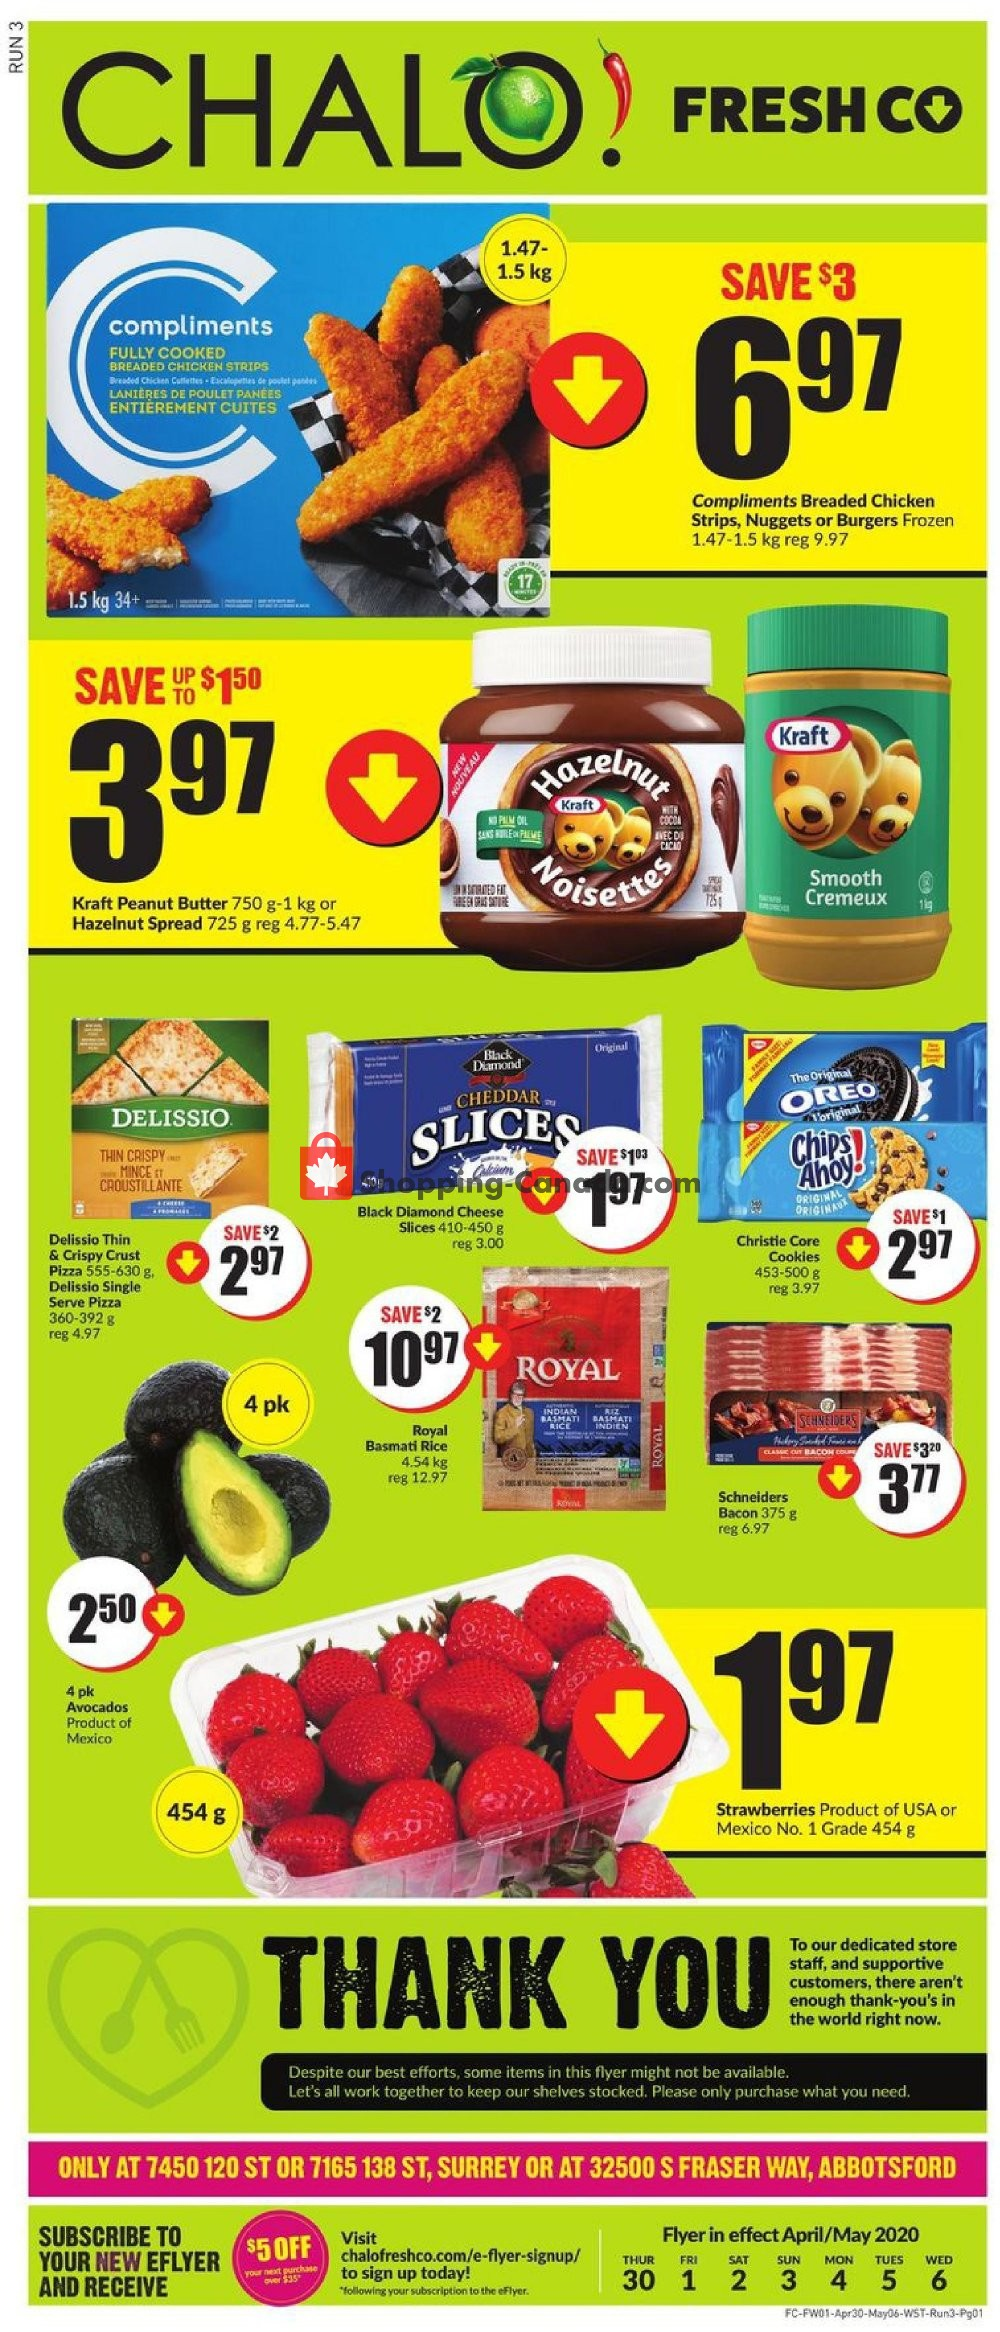 Flyer Chalo FreshCo Canada - from Thursday April 30, 2020 to Wednesday May 6, 2020